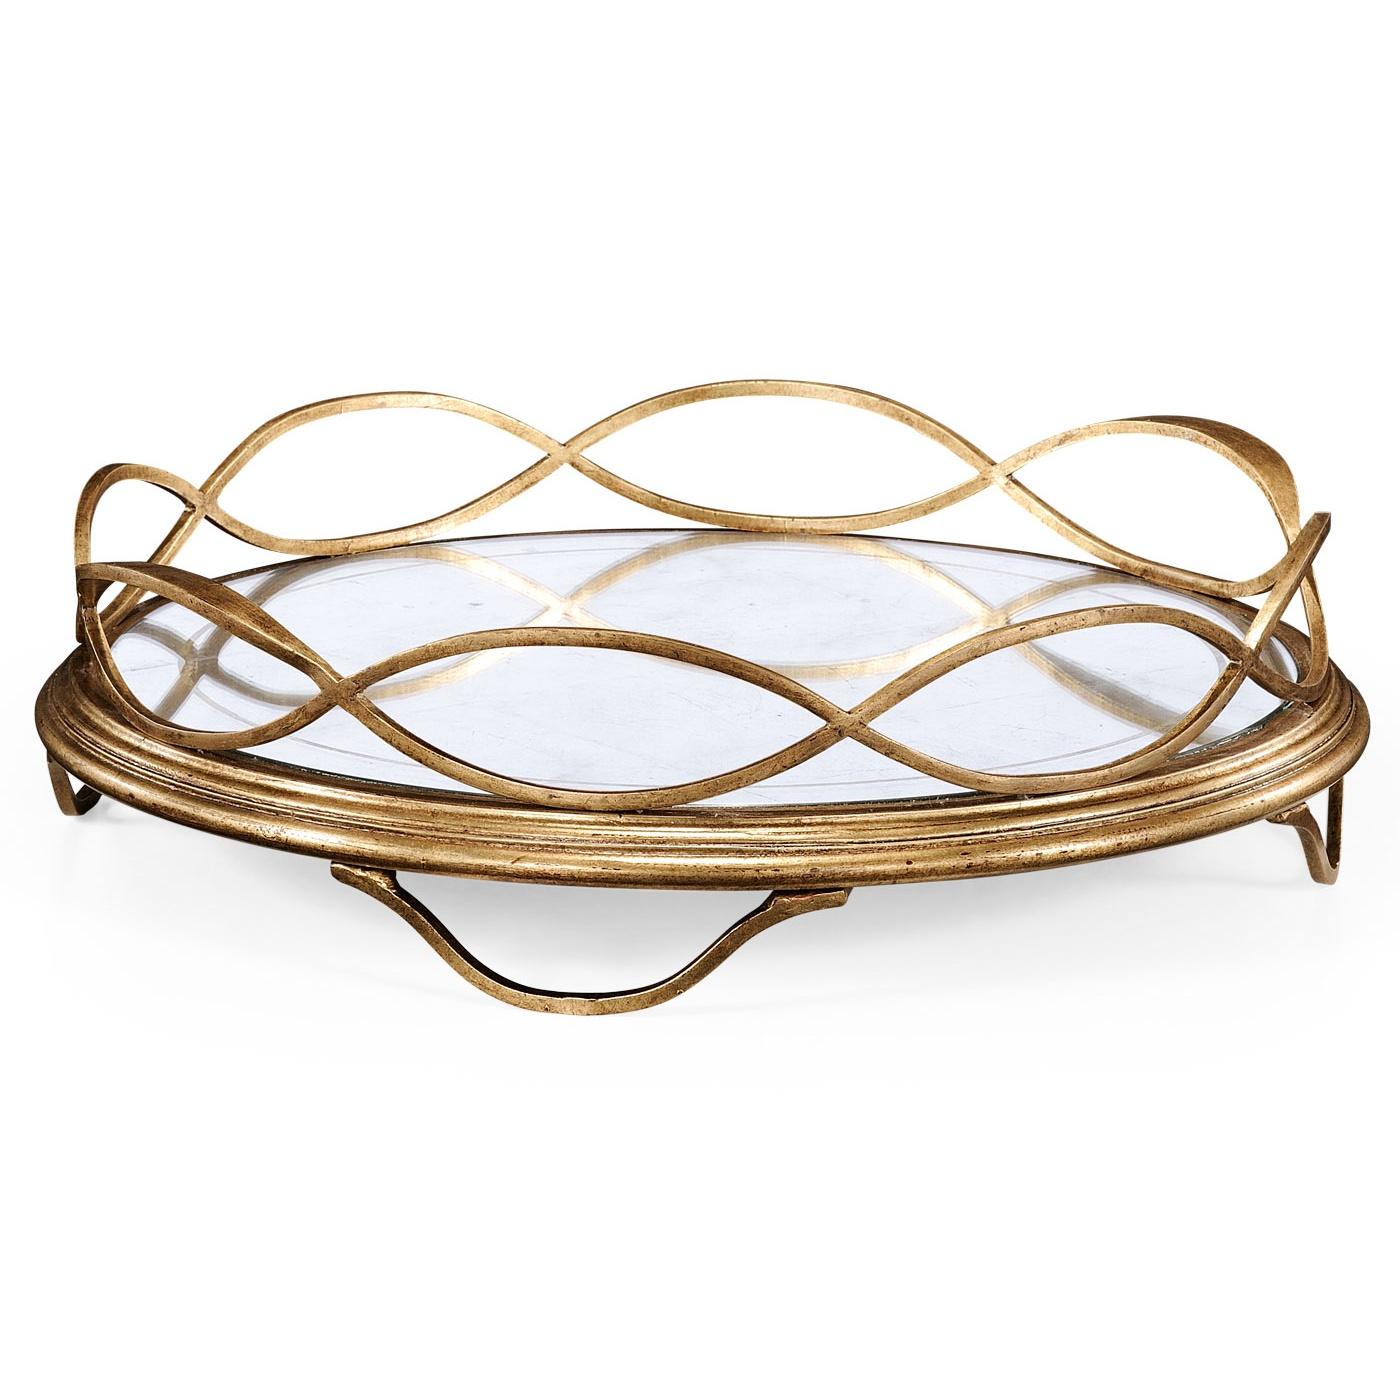 Extravagant mirror tray golden design